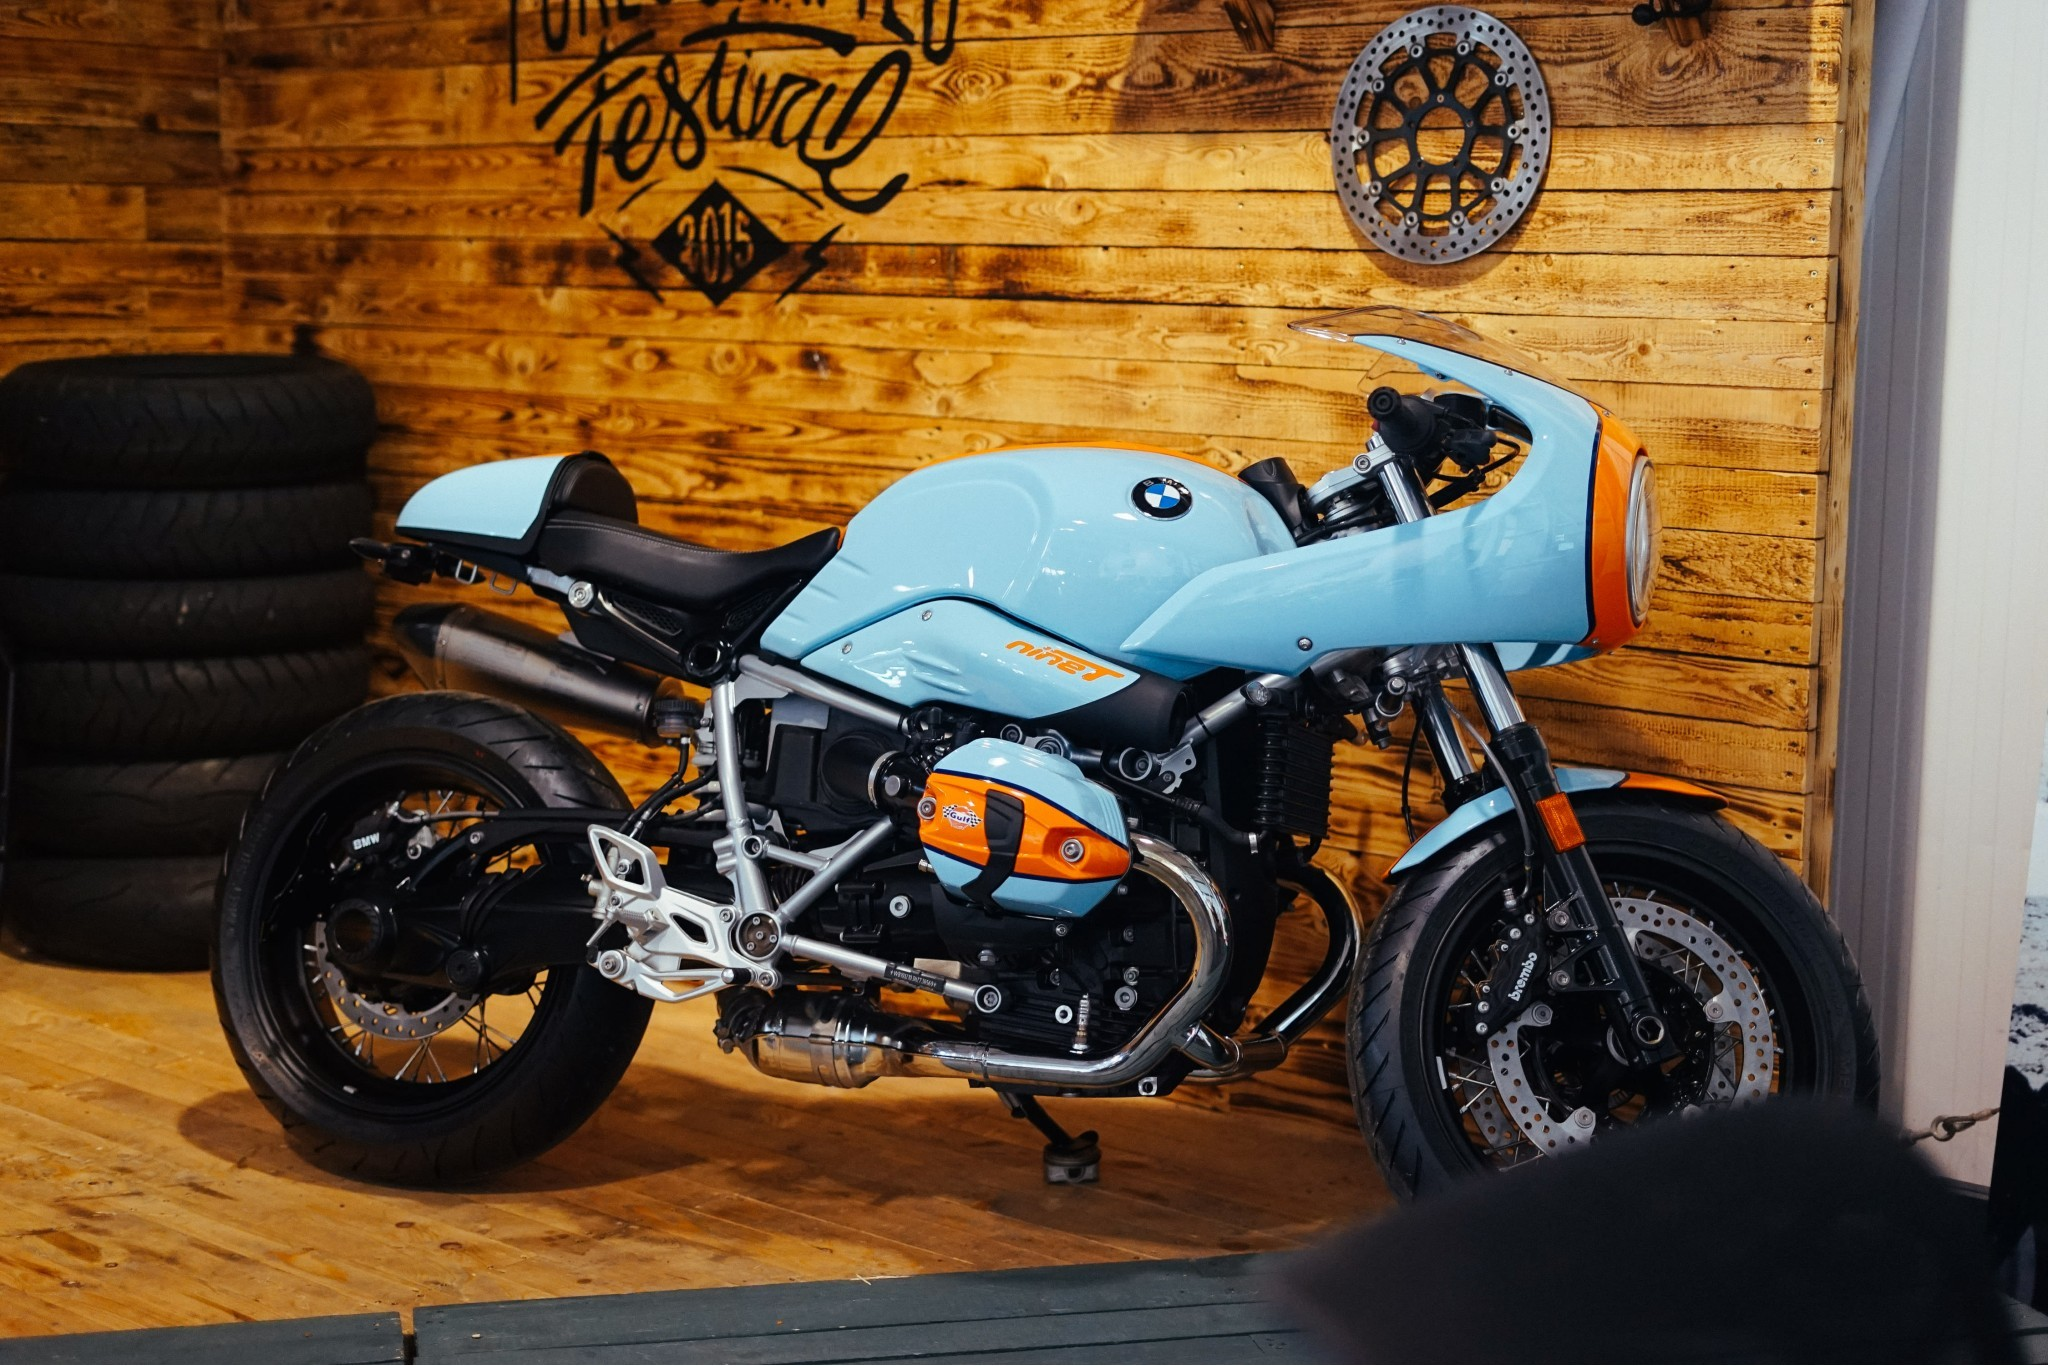 Introducing Custom Werks by Dick Lovett Motorrad